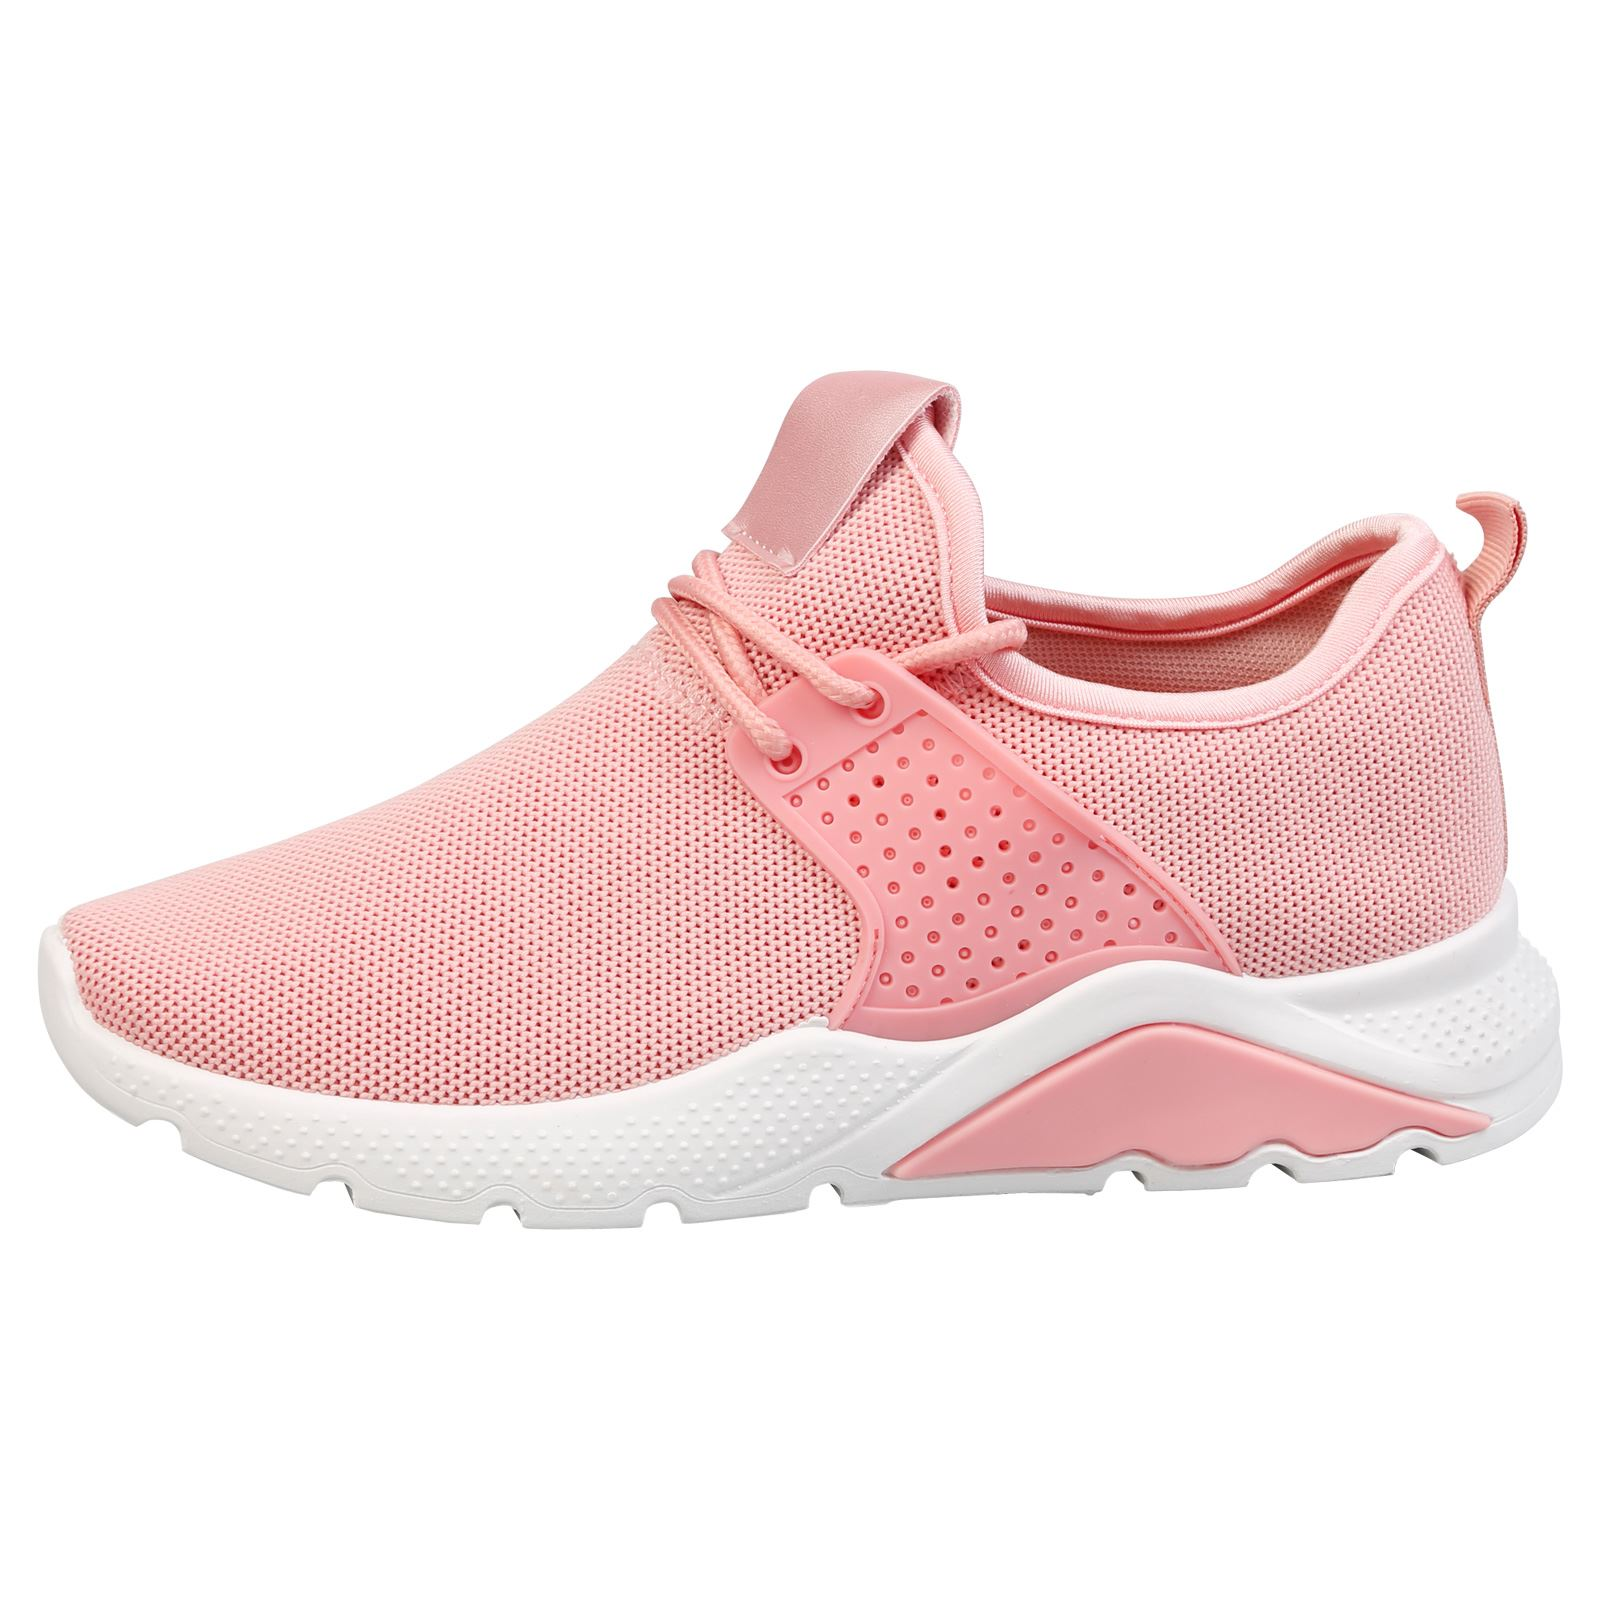 WOMENS-SHOES-LADIES-TRAINERS-SNEAKERS-COMFORT-CASUAL-MESH-PUMPS-GYM-FASHION-SIZE